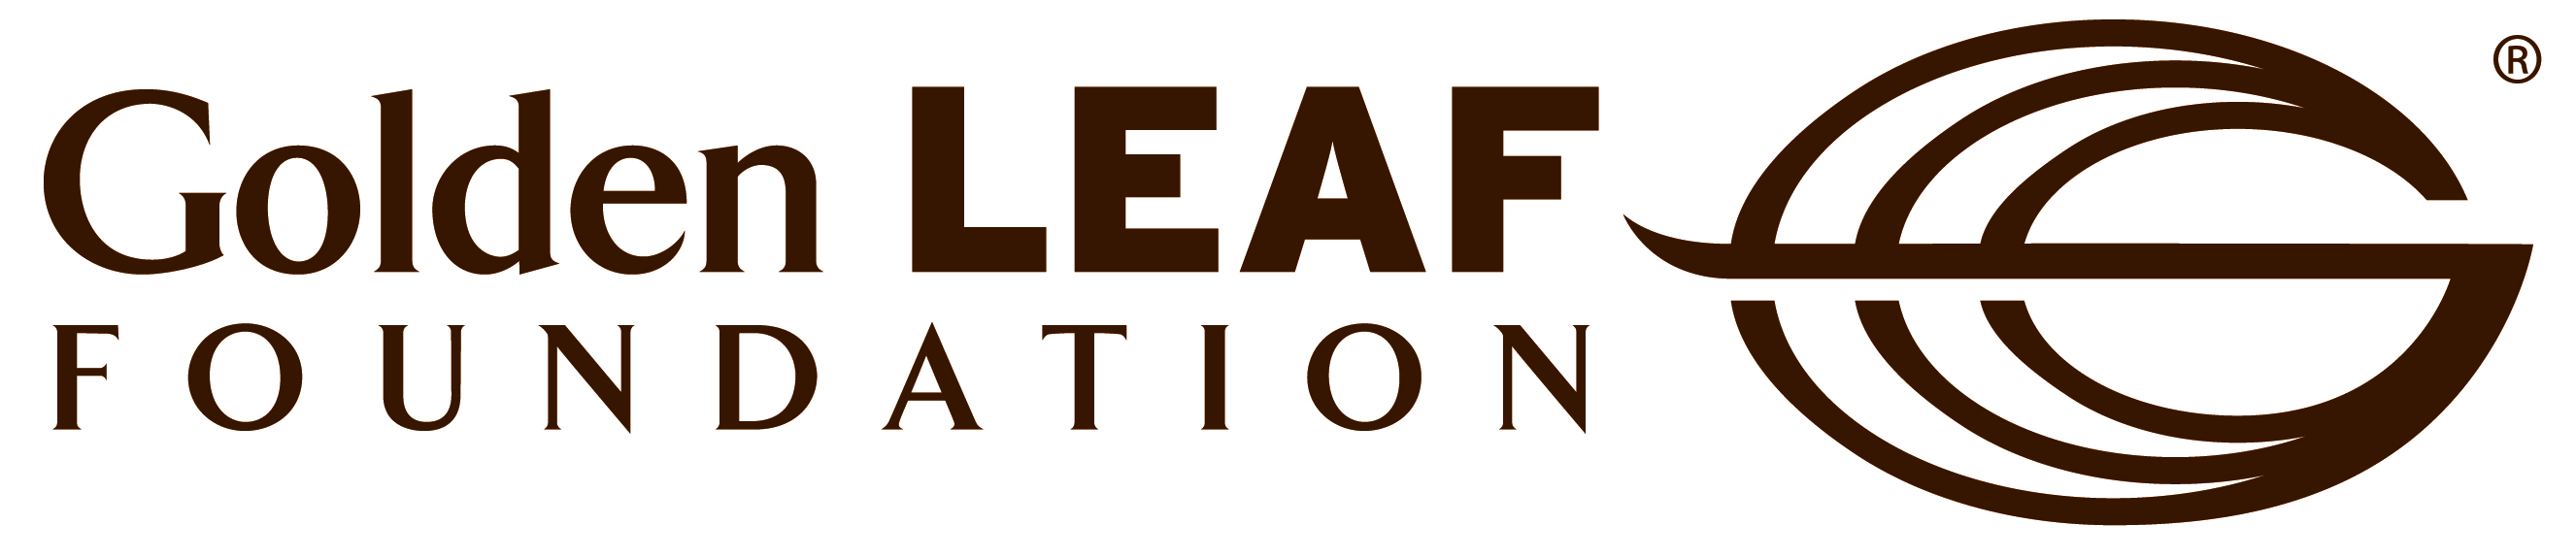 GoldenLeaf Foundation logo